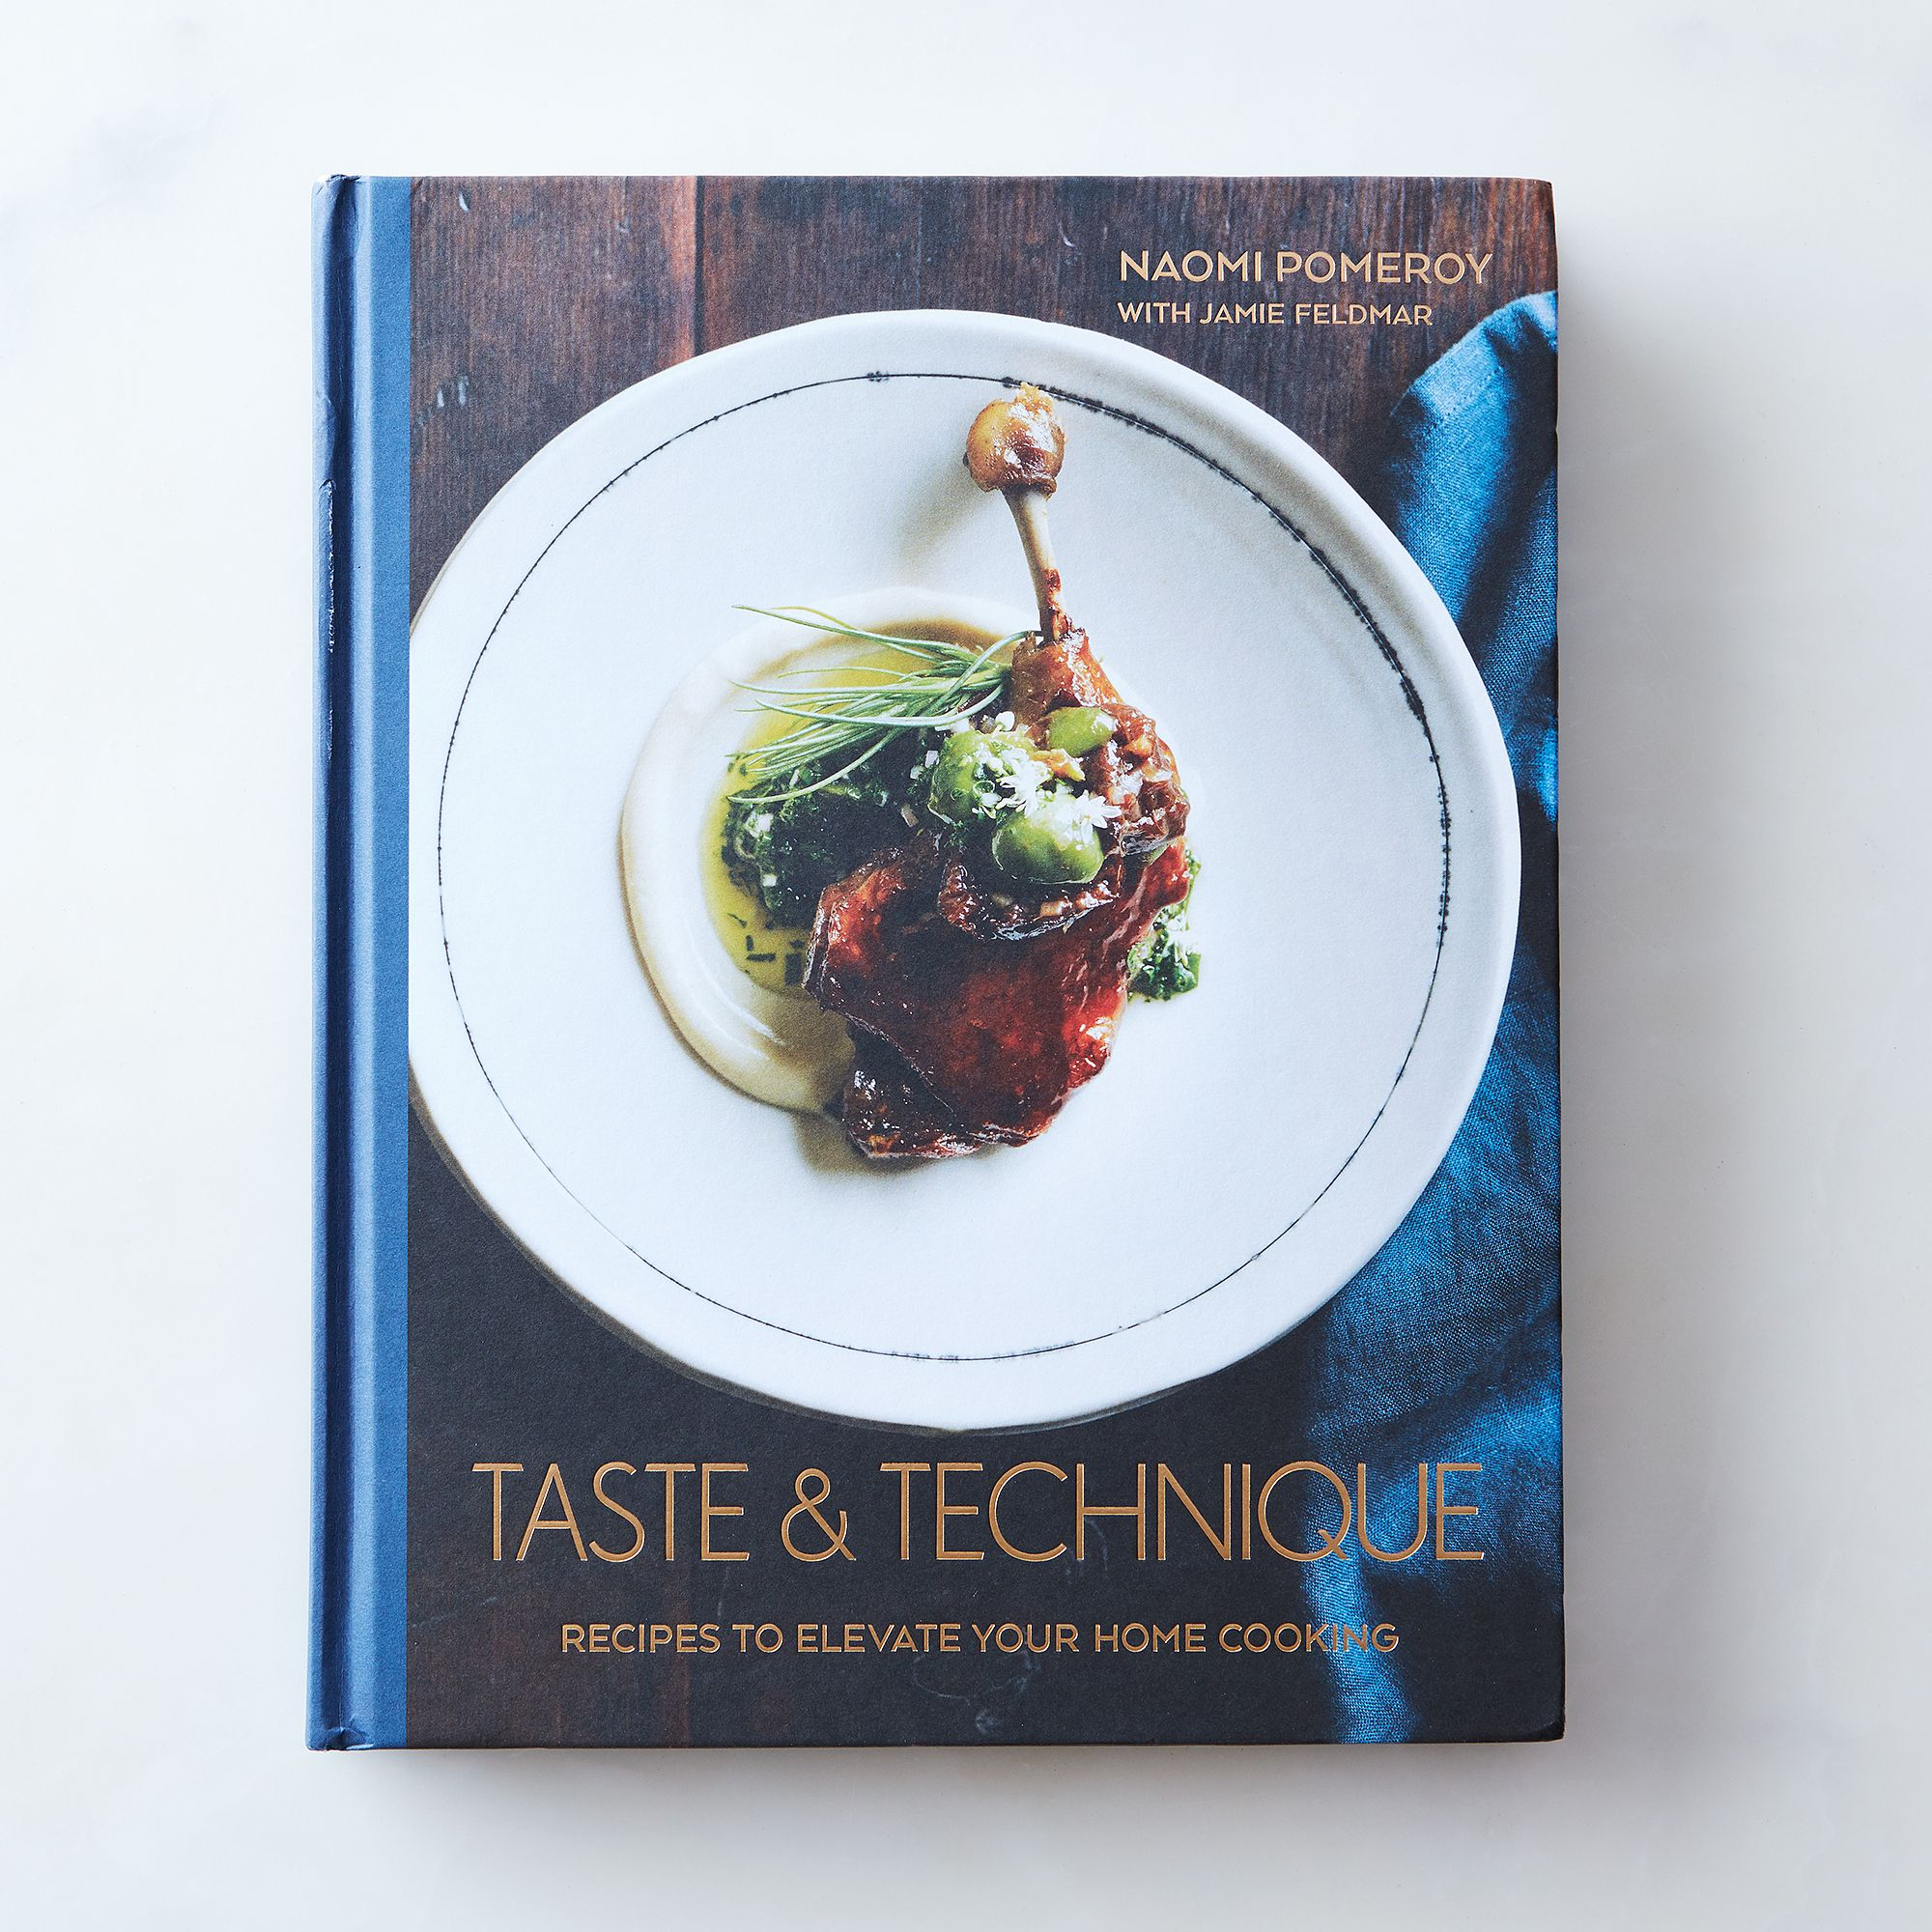 6e19ece0 163b 46e5 899c f5d864236360  2016 0824 taste and technique cookbook silo mark weinberg 044